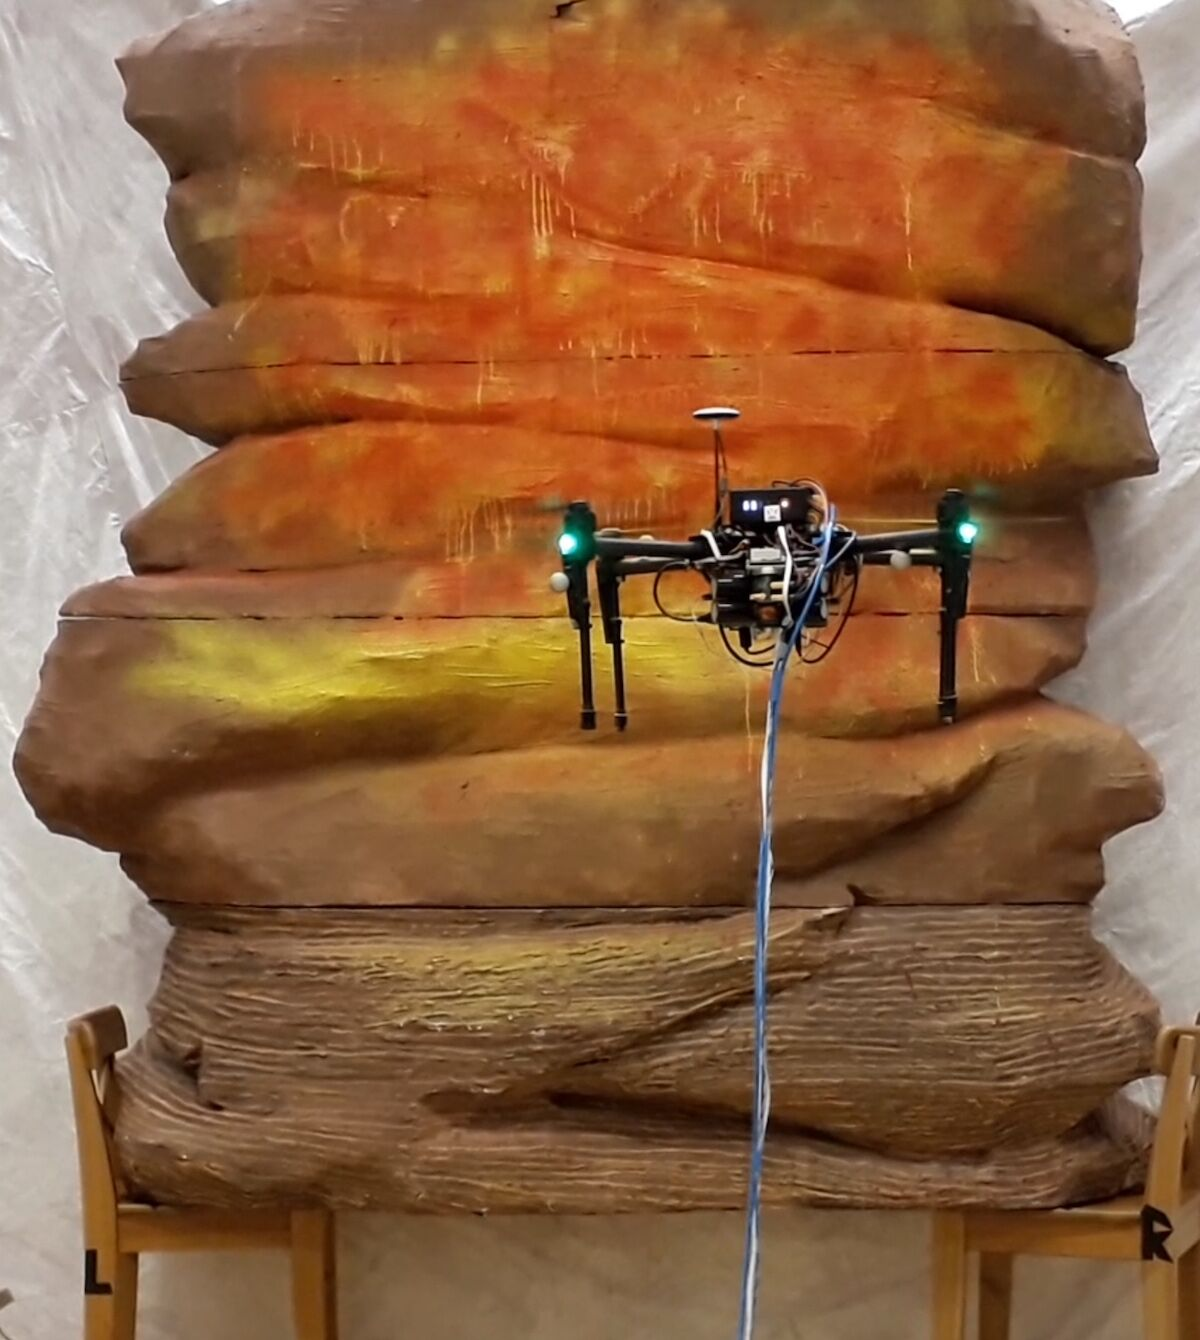 The Disney PaintCopter painting on a sculptural surface. Photo courtesy of Disney Research.